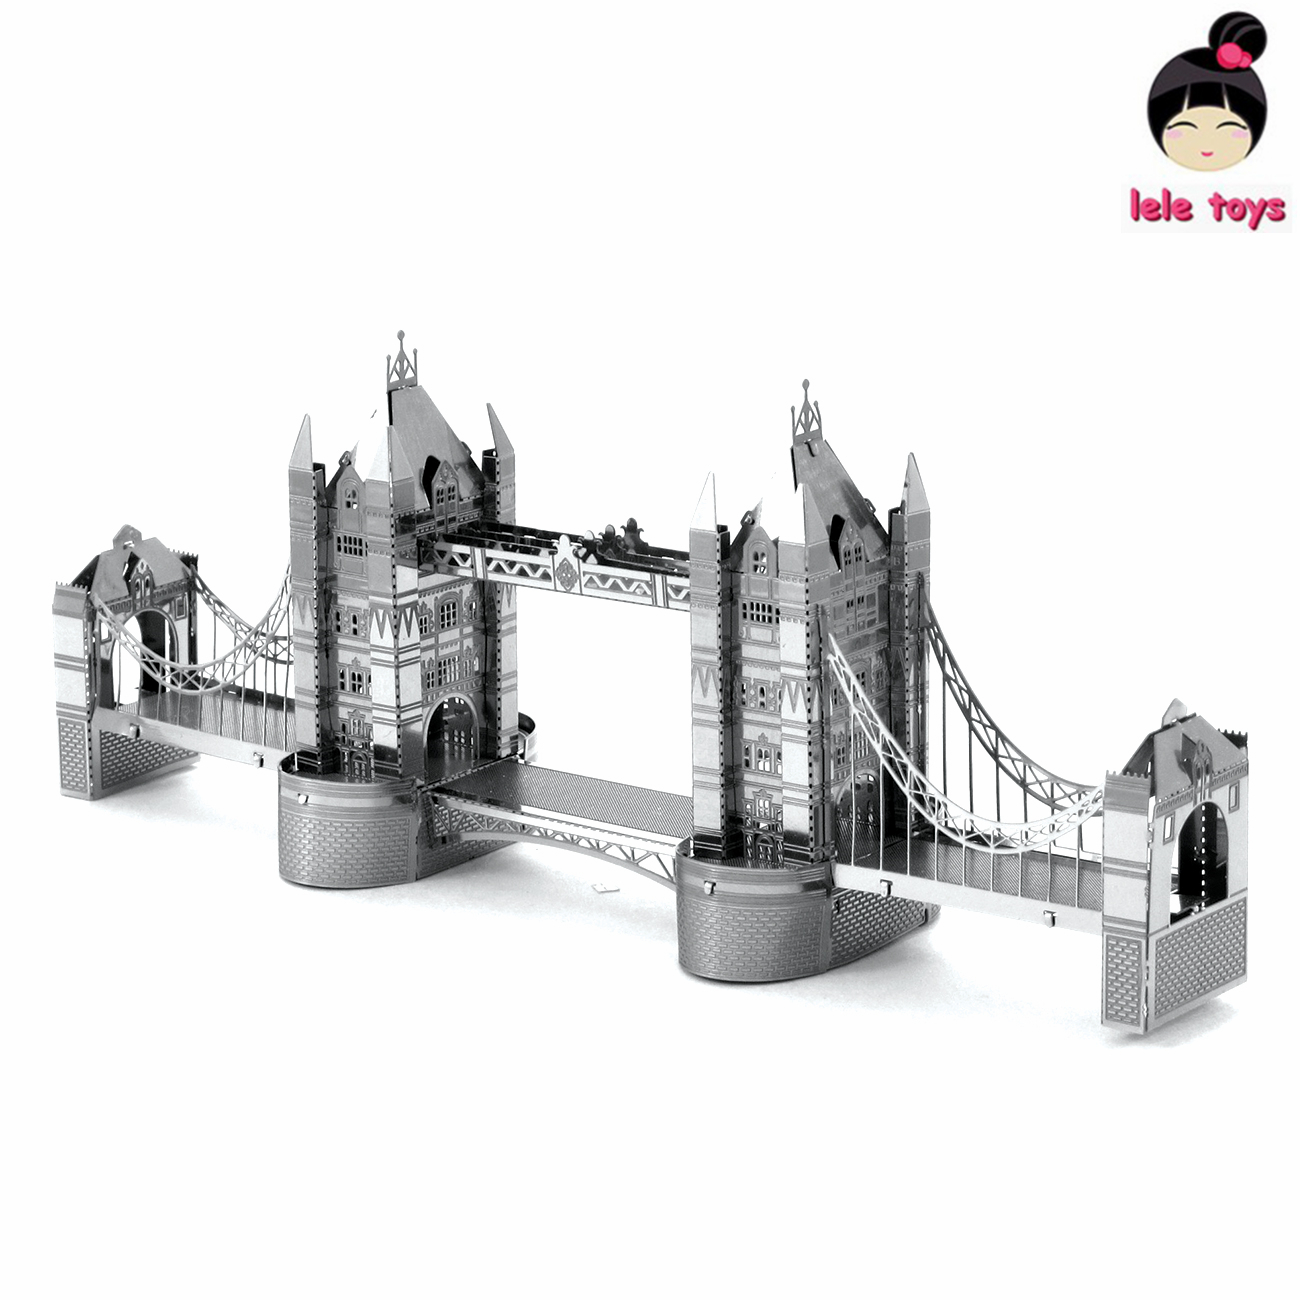 Construction Famous Buildings Over The World 3D Metal Model Puzzles LONDON TOWER BRIDGE Chinese Metal Earth Stainless Steel(China (Mainland))